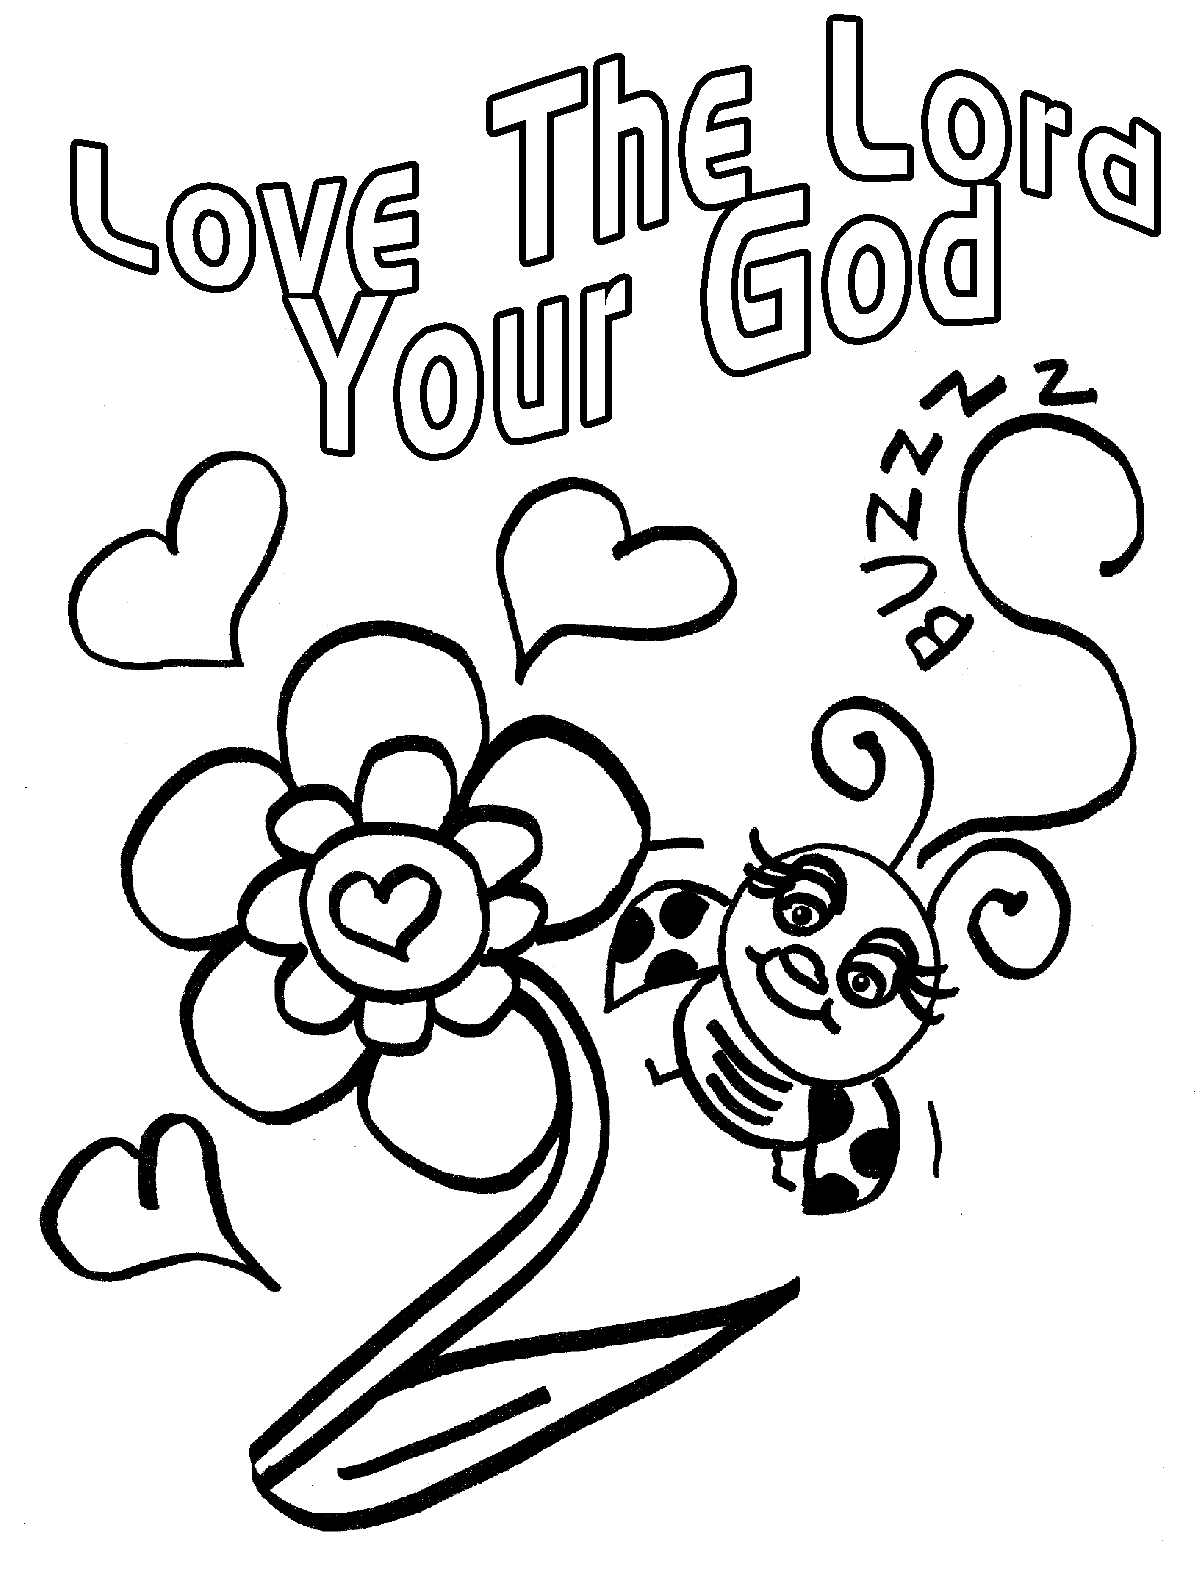 3bpblogspot S3Gf4eys Ns URVCctsNHfI AAAAAAAAcFs ZhHI5aBHcOU S1600 Love The Lord Your God